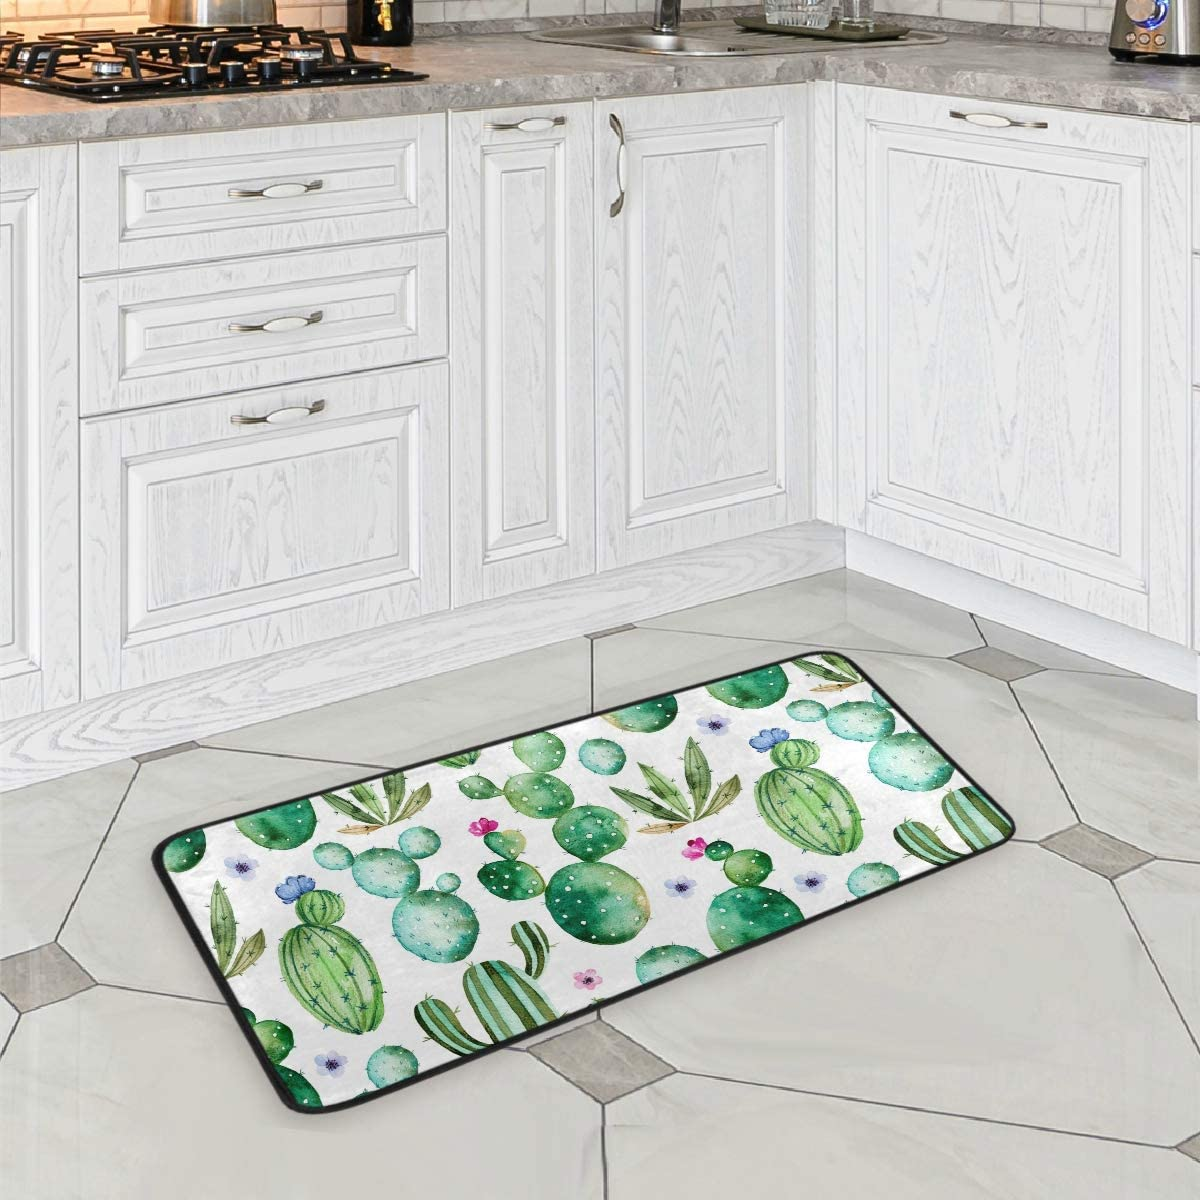 ZOEO Cactus Bath Runner Rug Green Succulents Plants Floral Flower Non Slip Area Mat Rugs for Bathroom Kitchen Indoor Carpet Doormat Floor Dirt Trapper Mats Shoes Scraper 39